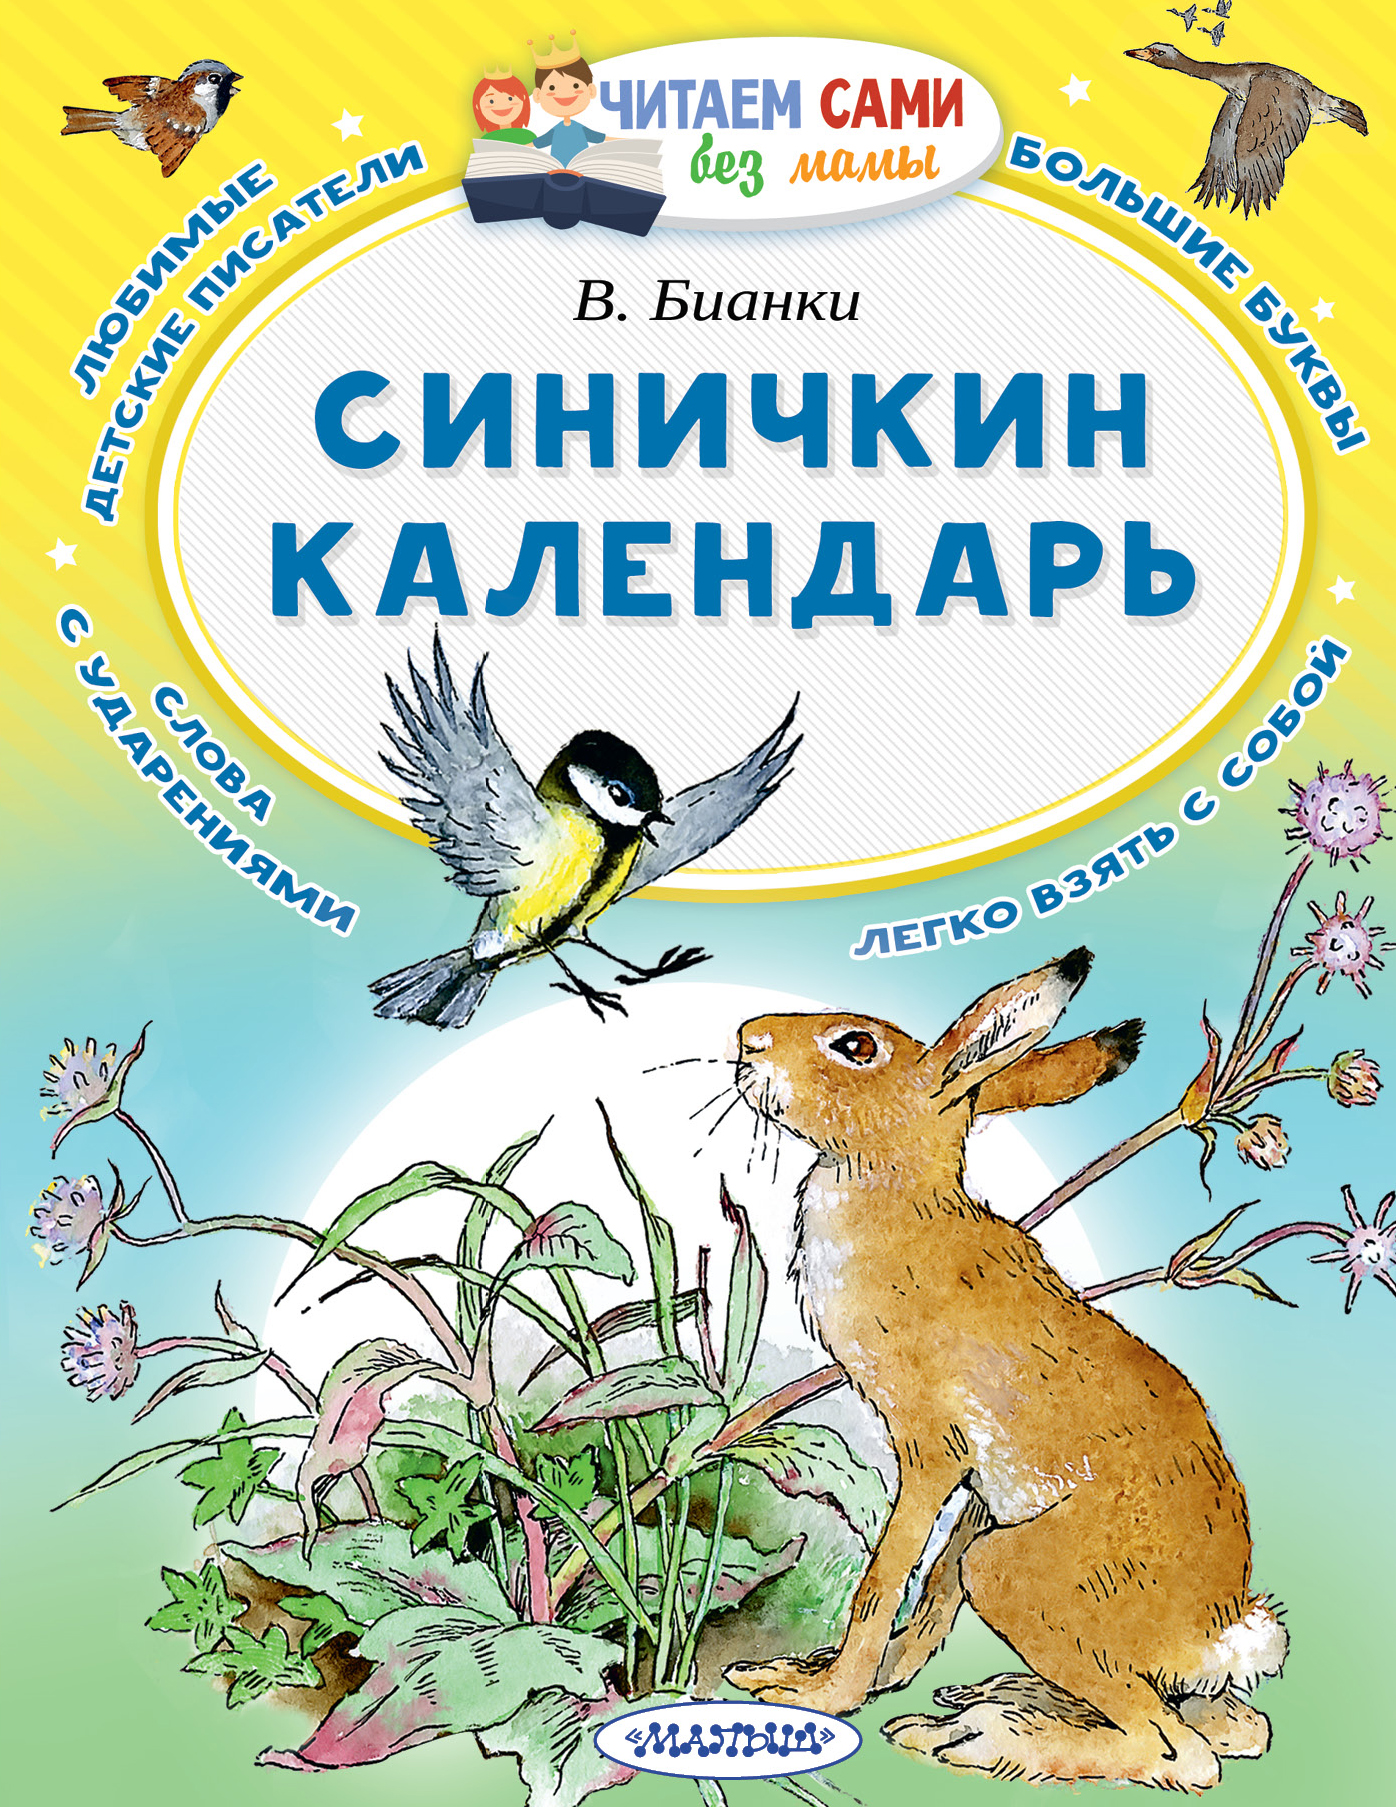 В. Бианки Синичкин календарь tiger family пенал с наполнением tiger family nature quest collection spring time